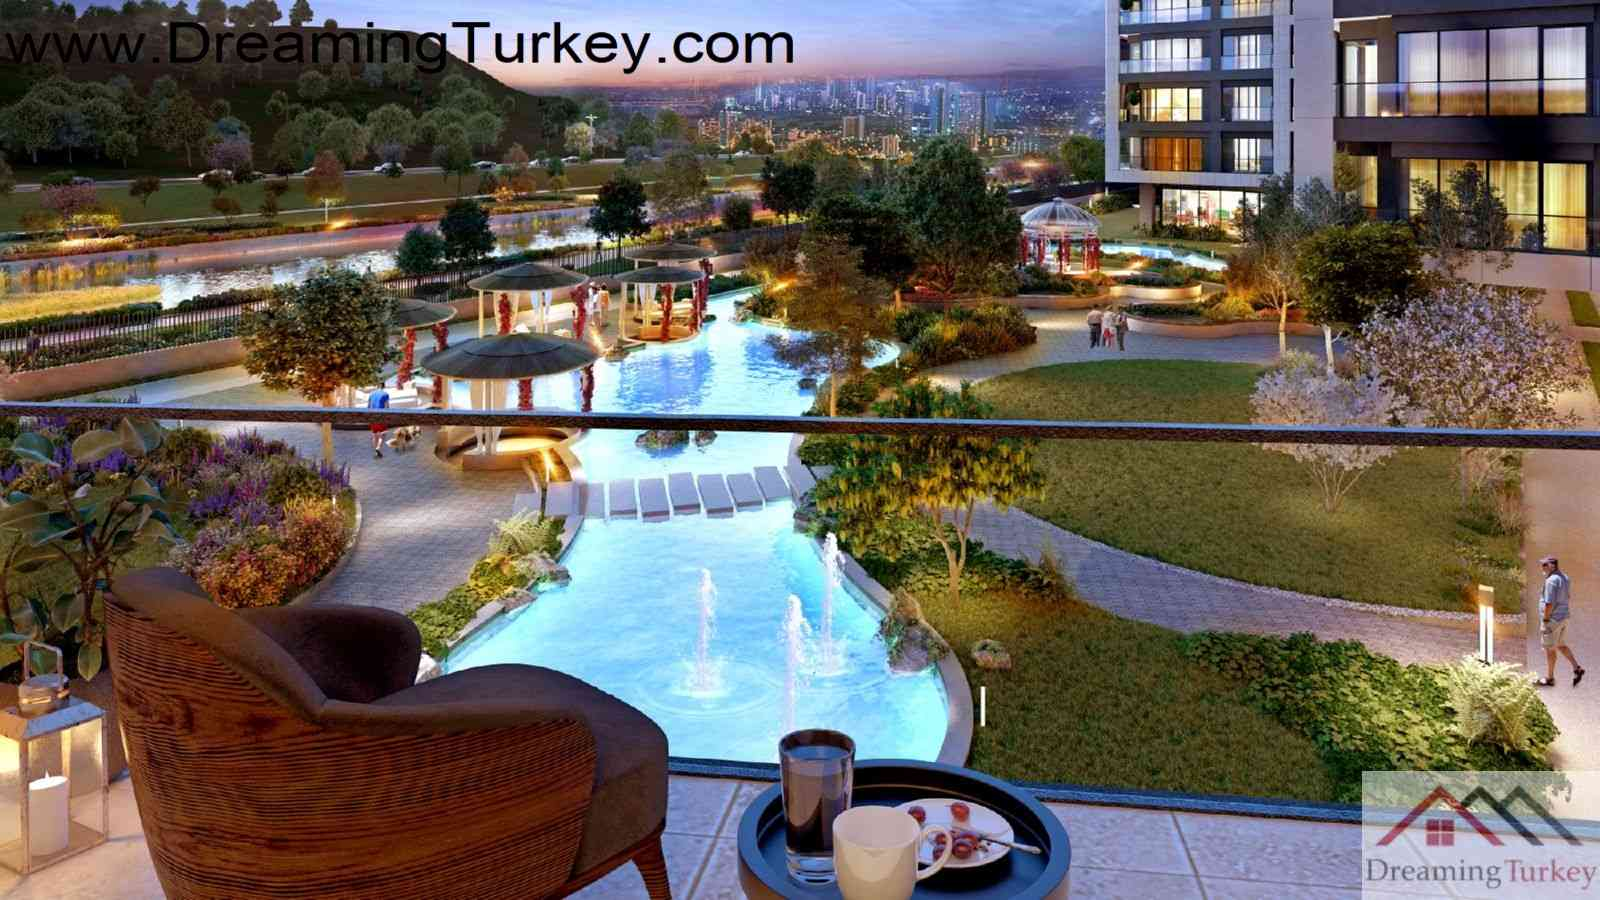 1-Bedroom Residence in a Luxury Complex with an Artificial Lake